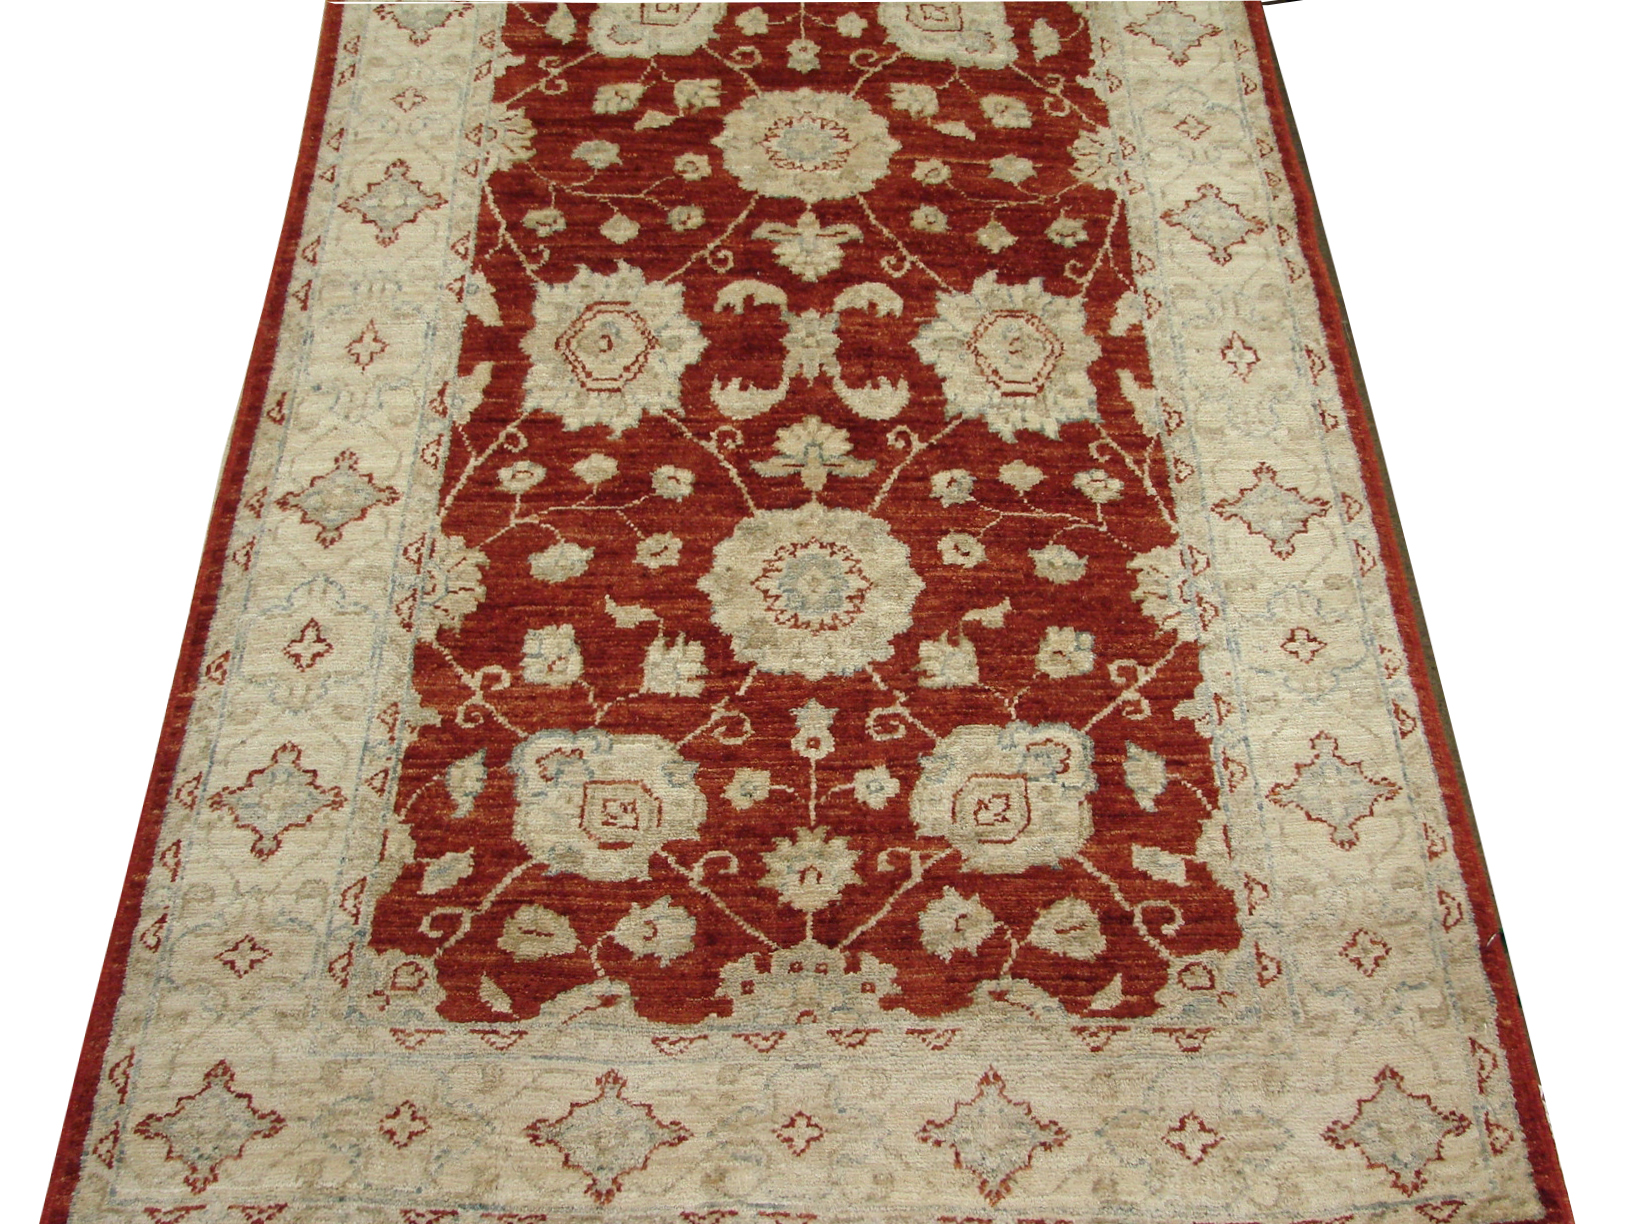 3x5 Peshawar Hand Knotted Wool Area Rug - MR14221